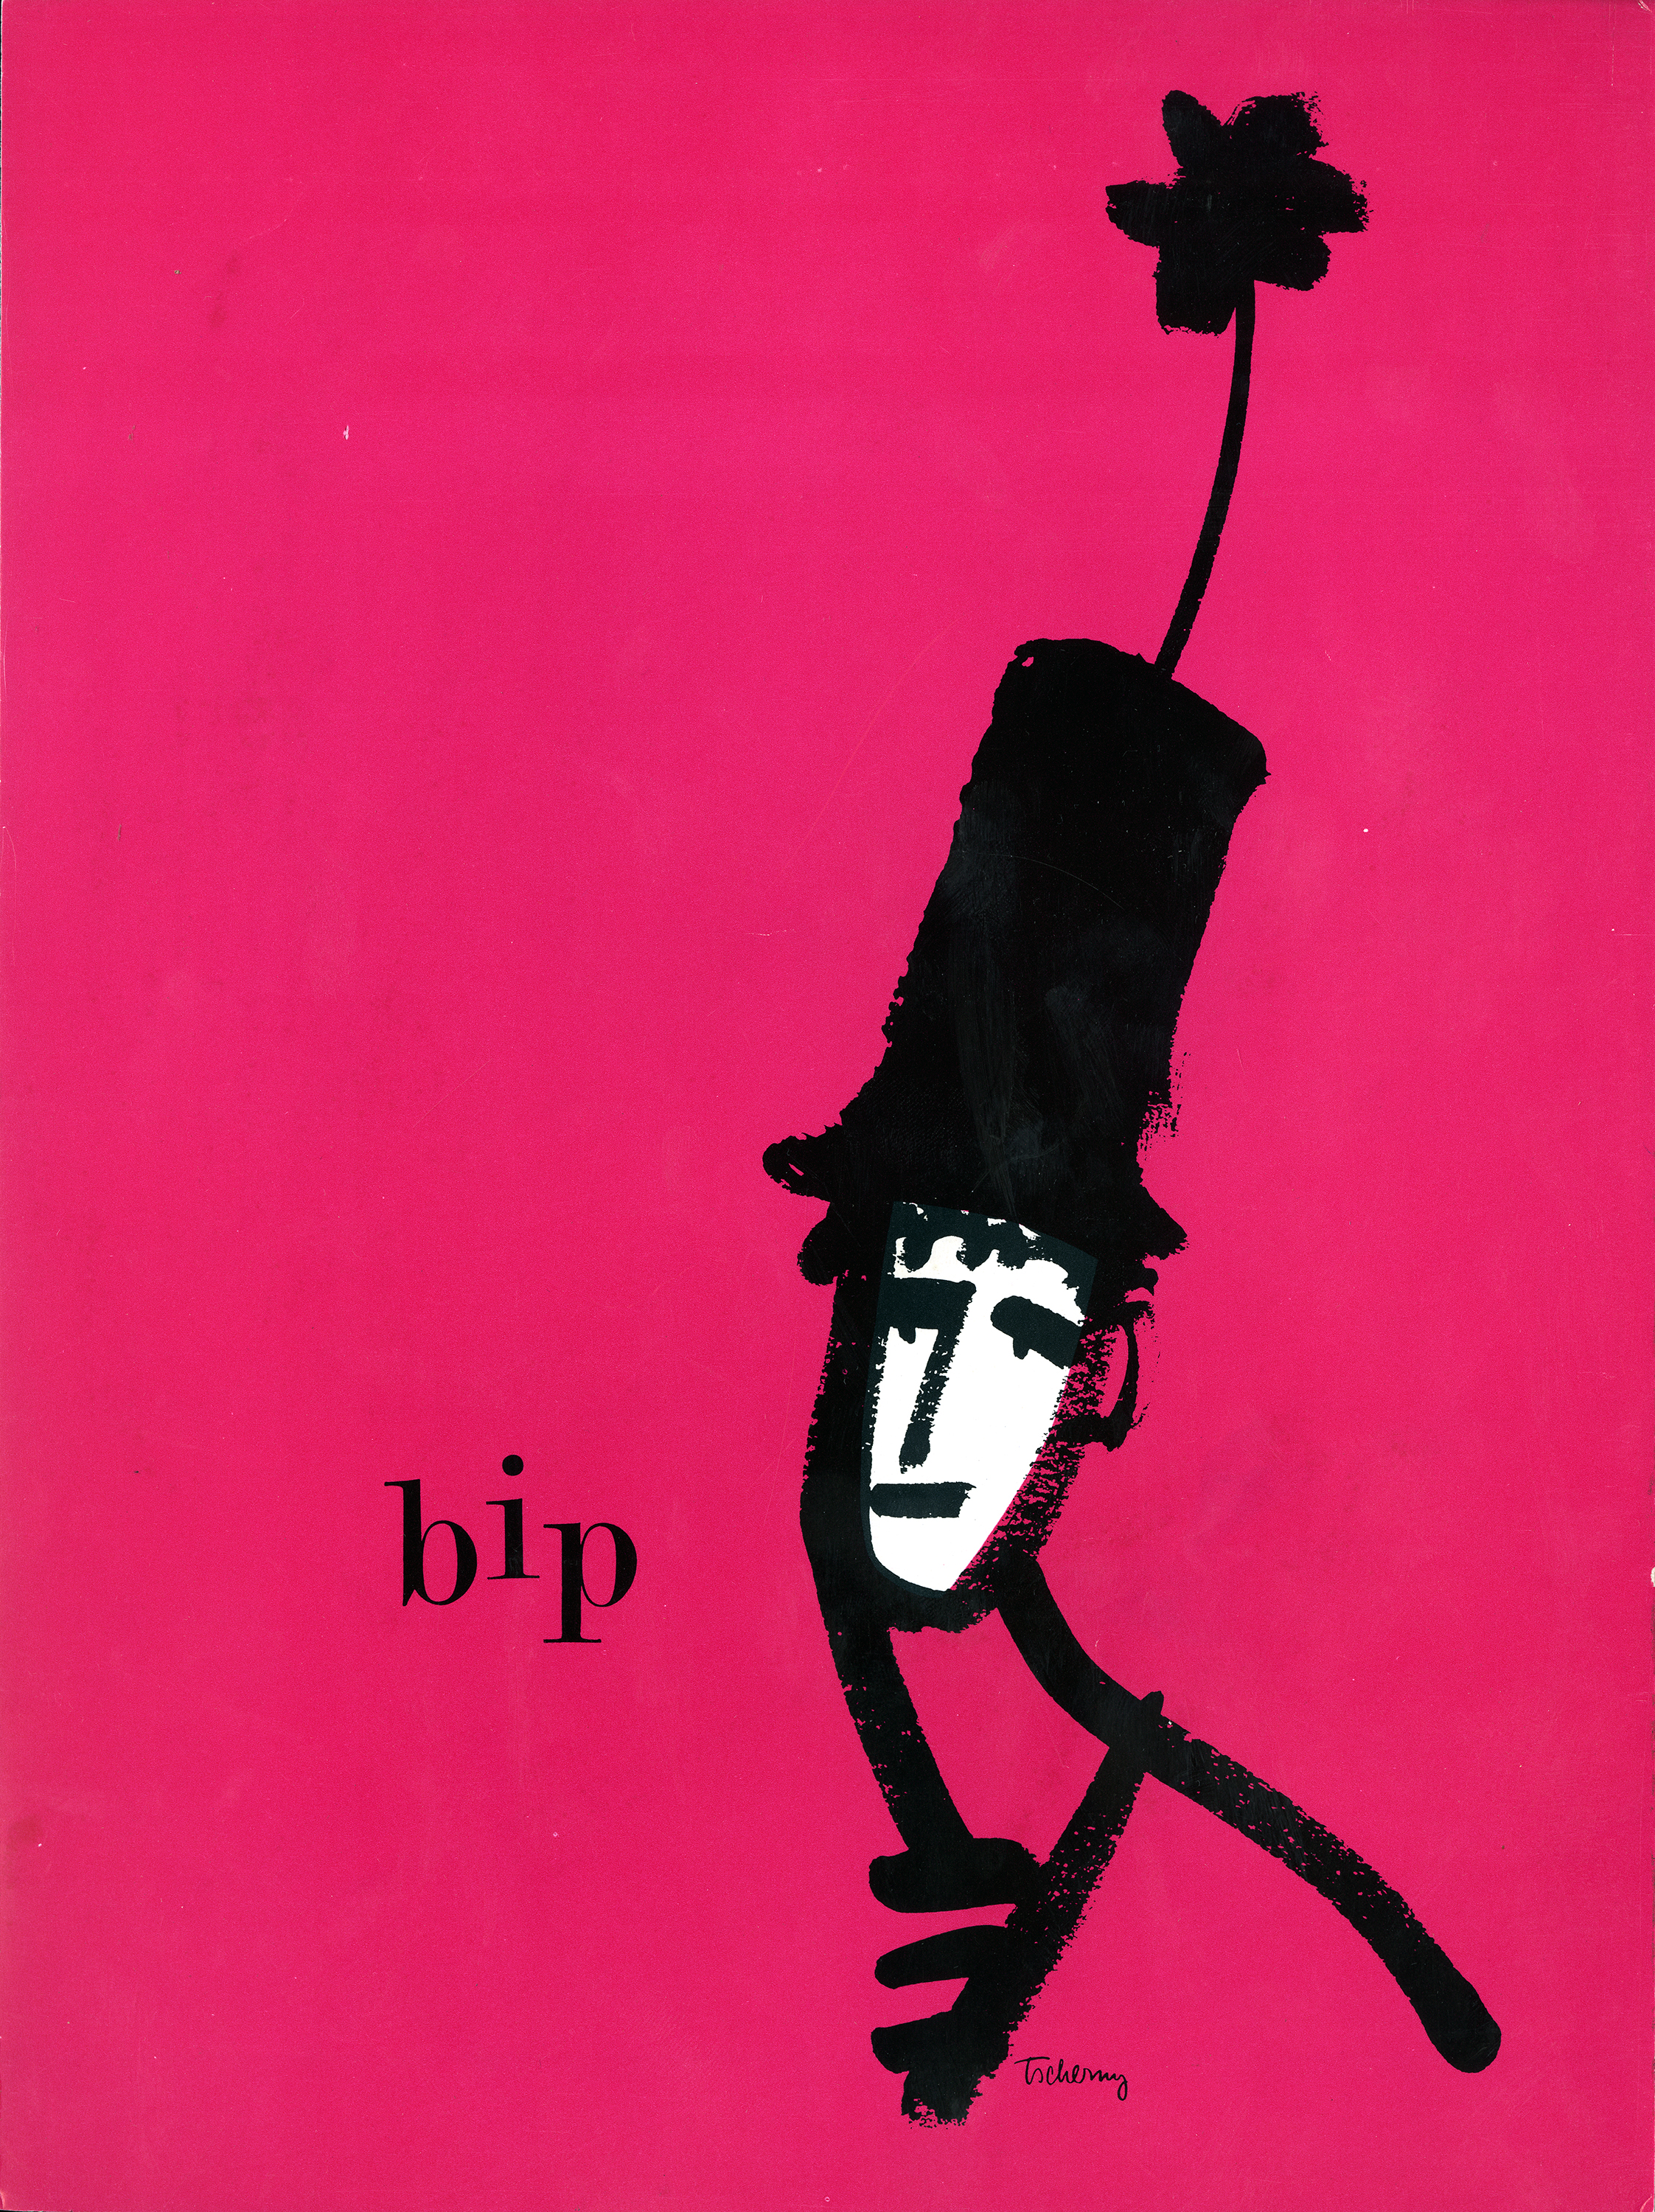 Bright pink program cover featuring a simple line drawing of Marcel Marceau with a white face in a tall hat with a flower sticking out of it.